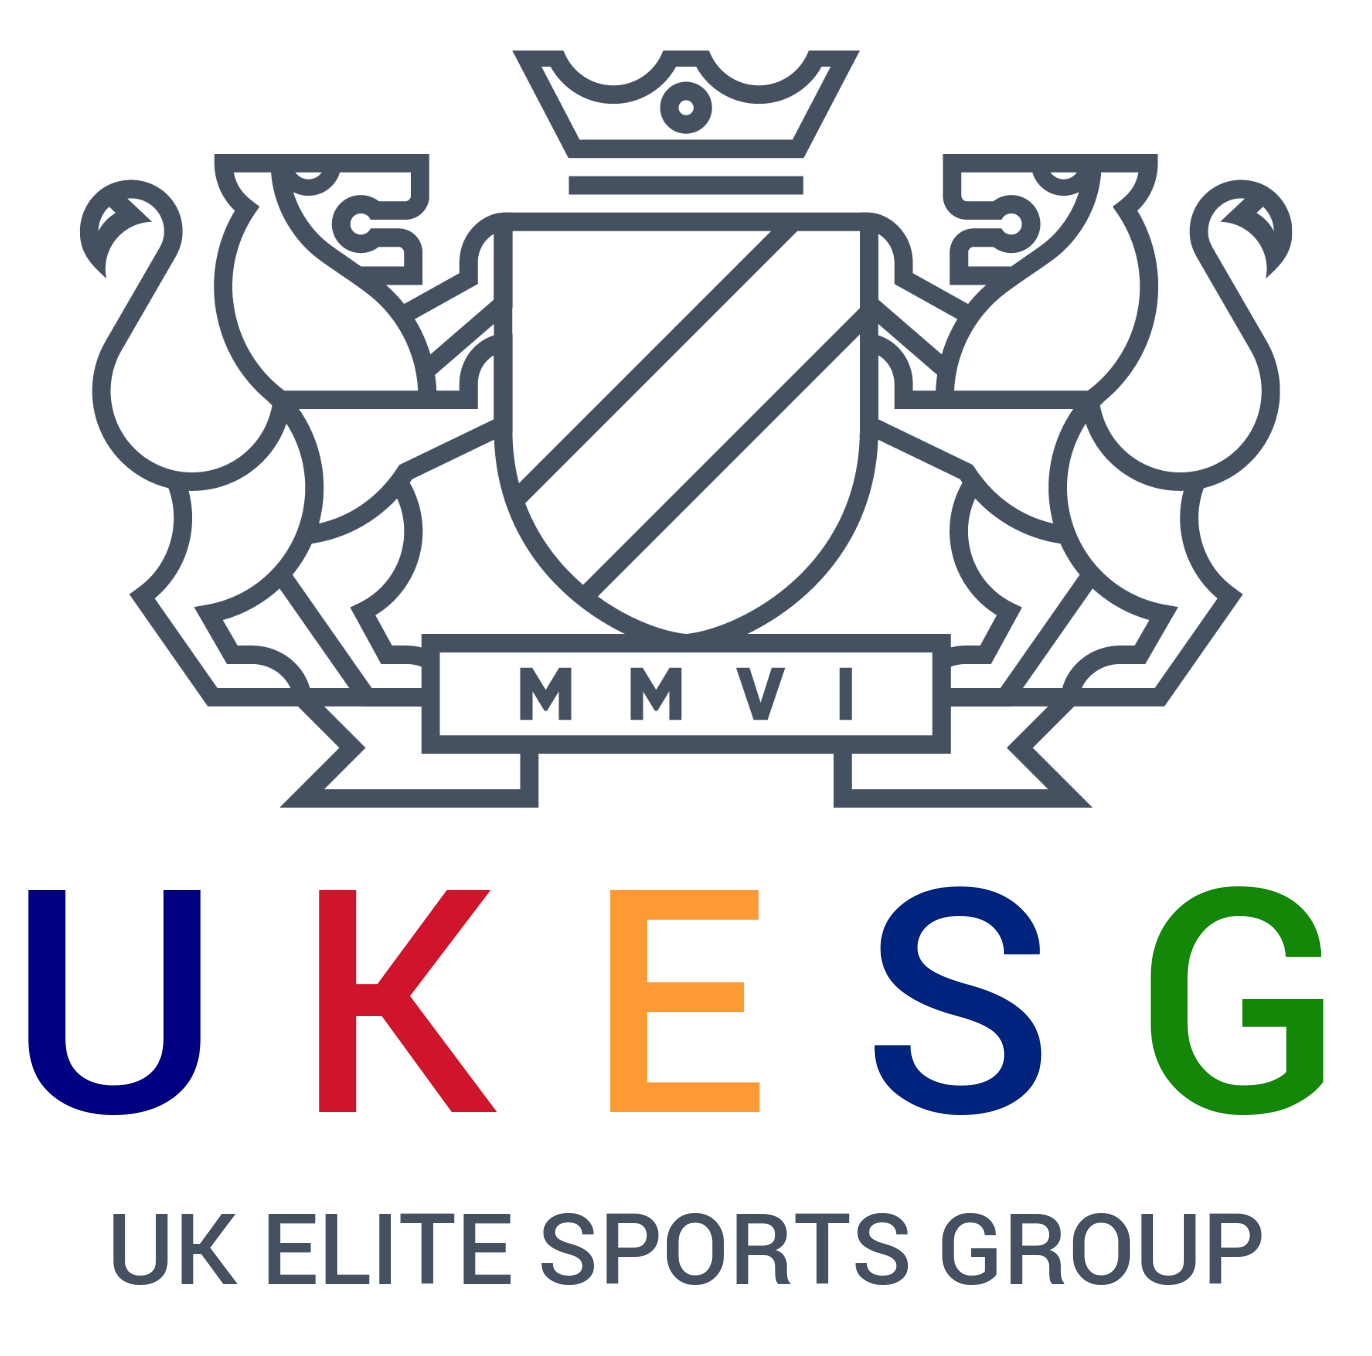 UKESG No Background